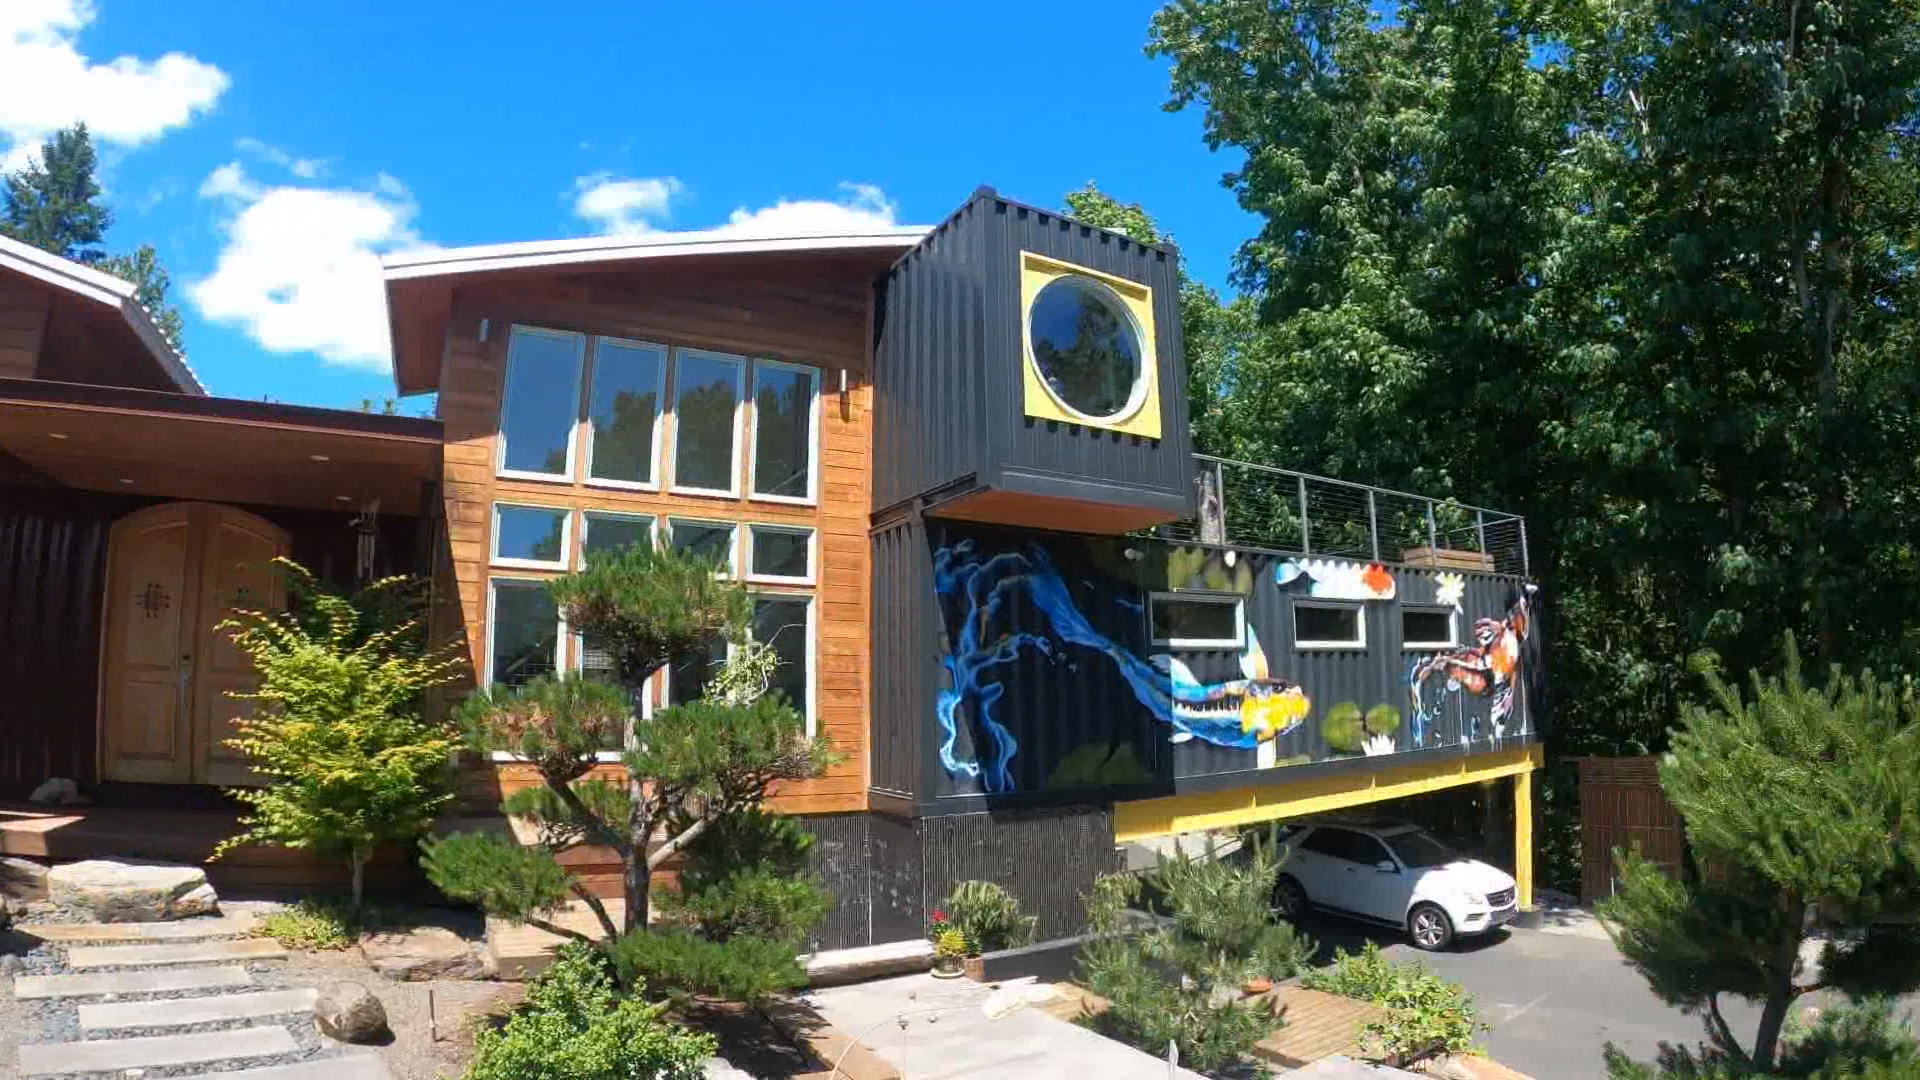 Home made of shipping containers listed for $2 million